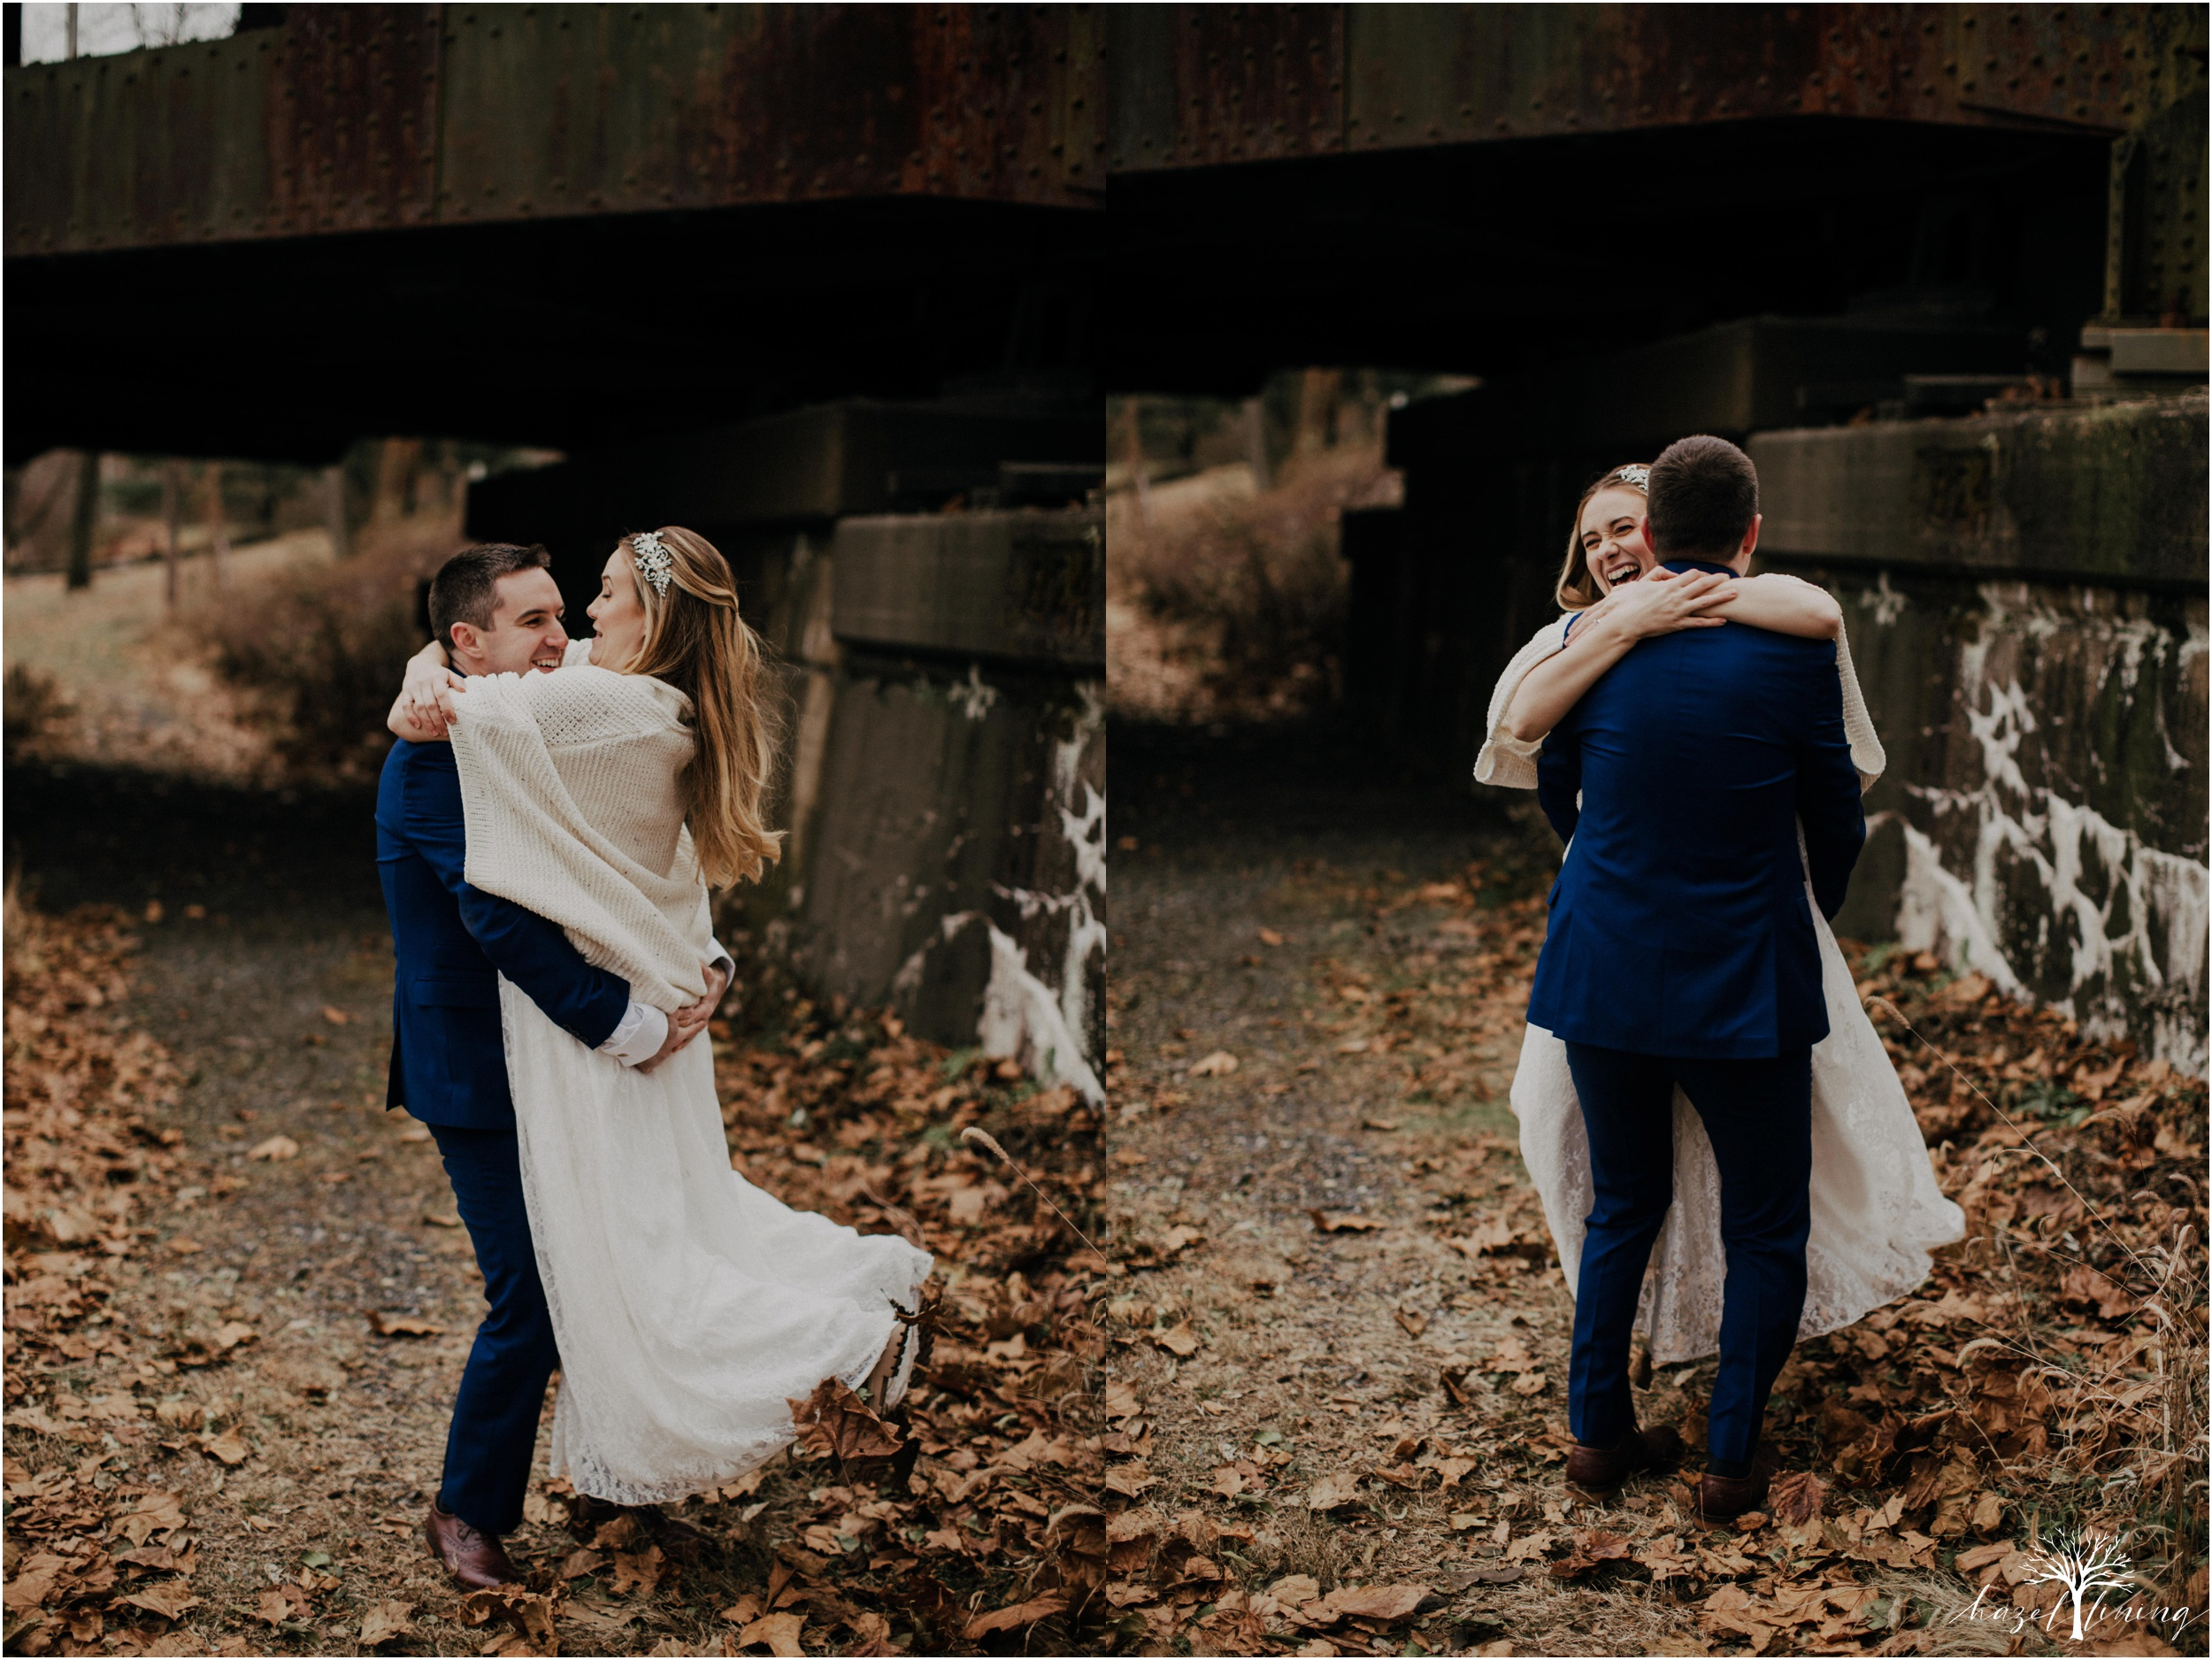 emily-pulham-paul-vincent-london-to-allentown-pa-railway-wedding-portraits_0025.jpg